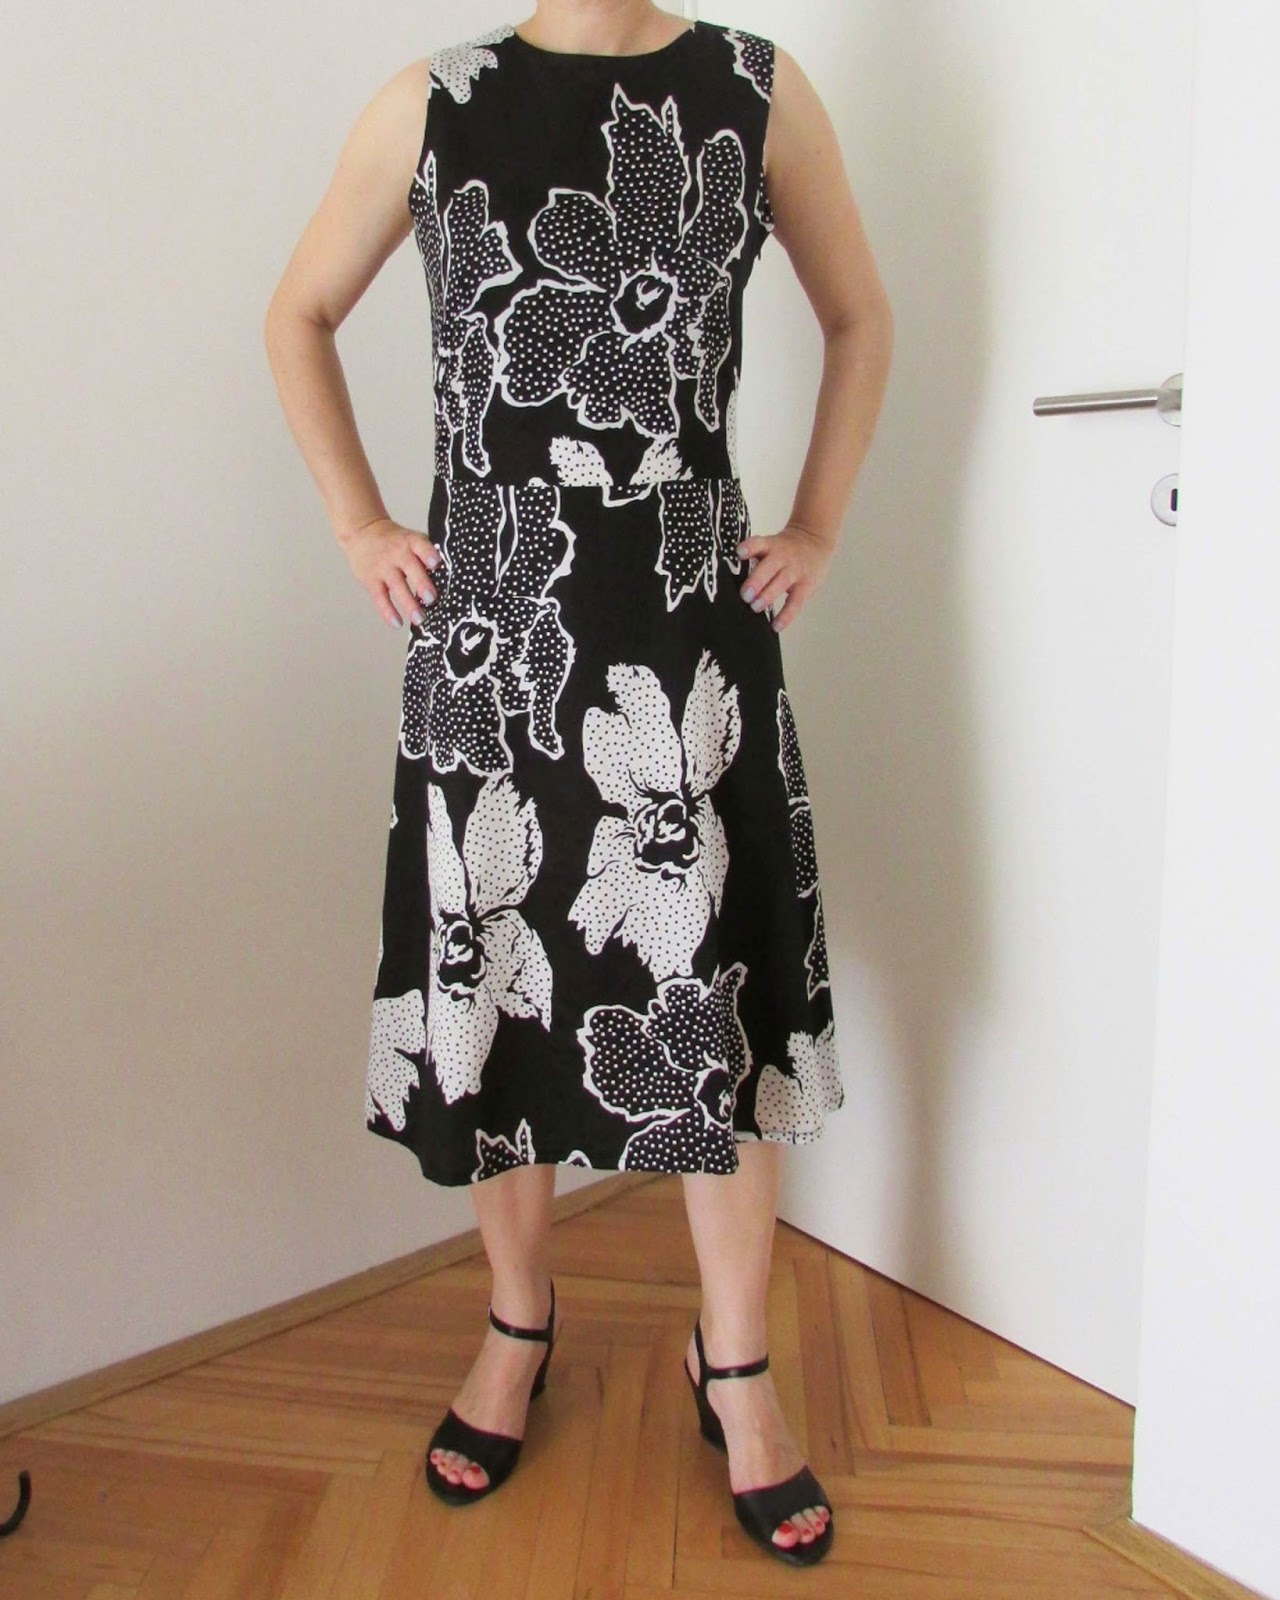 http://ladylinaland.blogspot.com/2014/07/black-and-white-dress.html